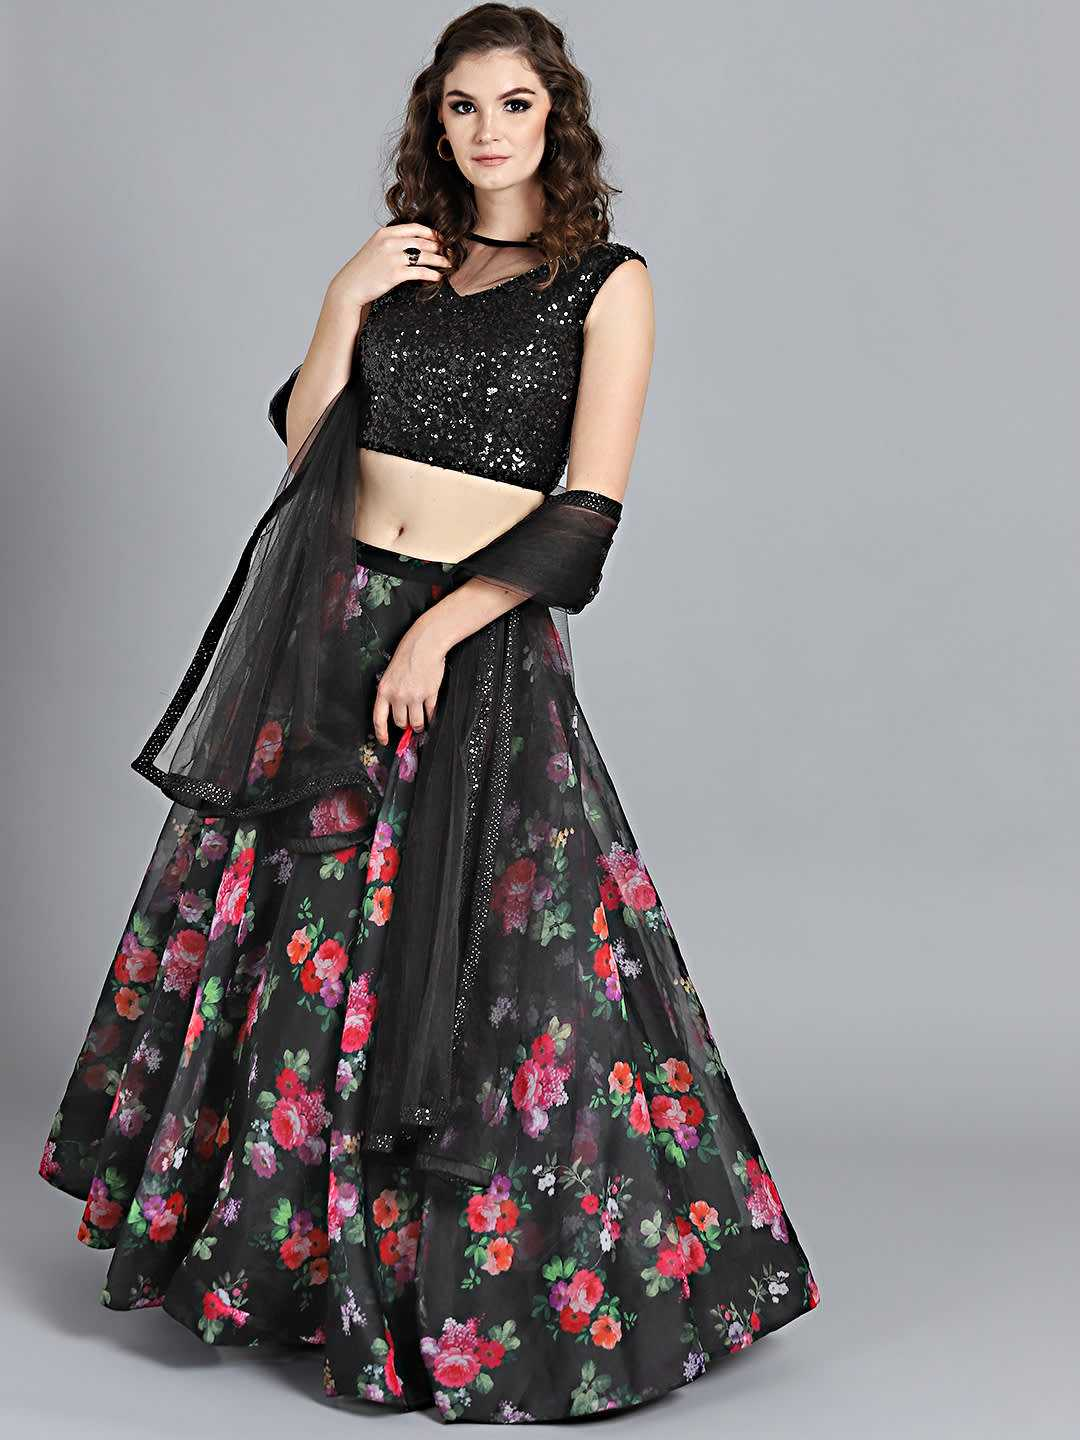 12 Breathtaking Black Lehenga Inspirations You Gotta See